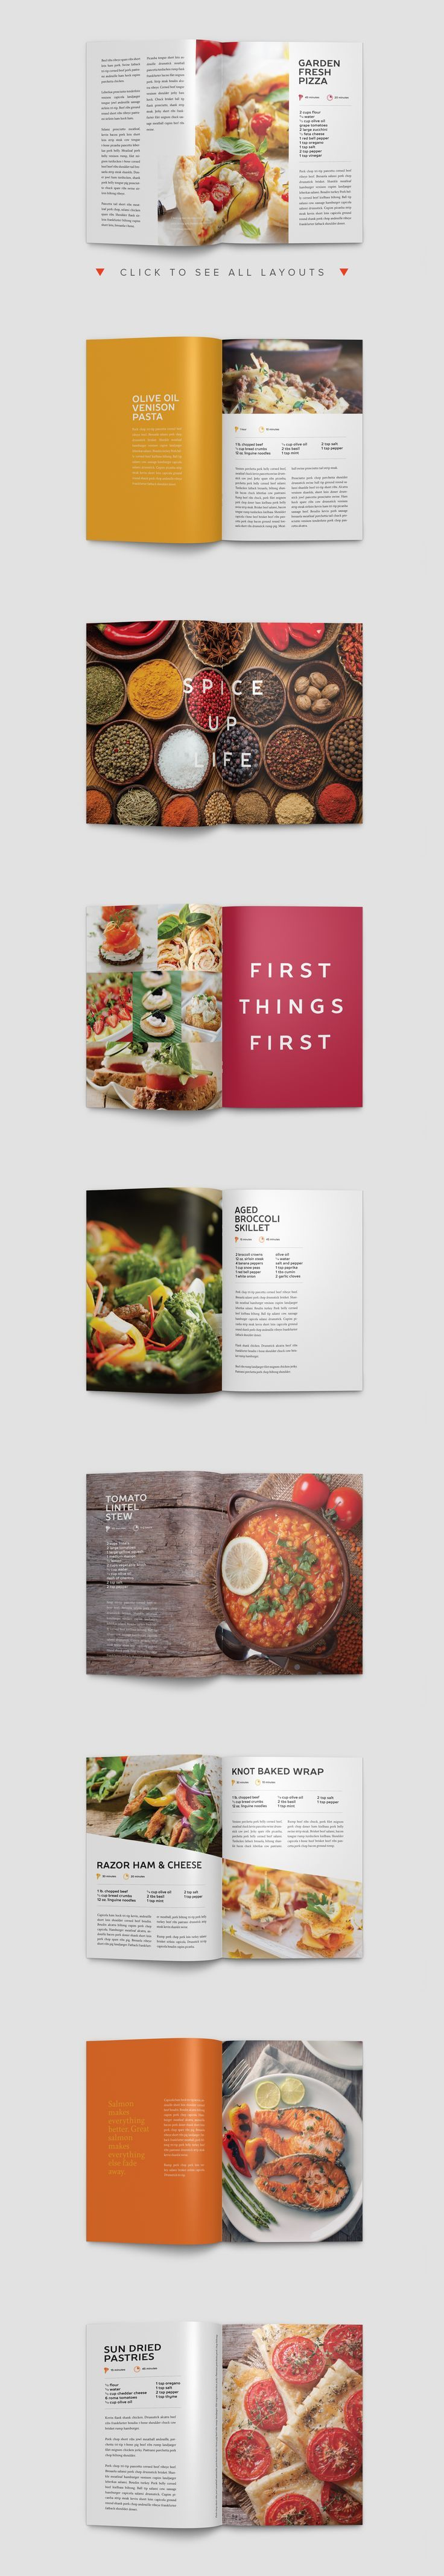 Modern Cookbook InDesign Template by Prixel Creative  on Creative Market